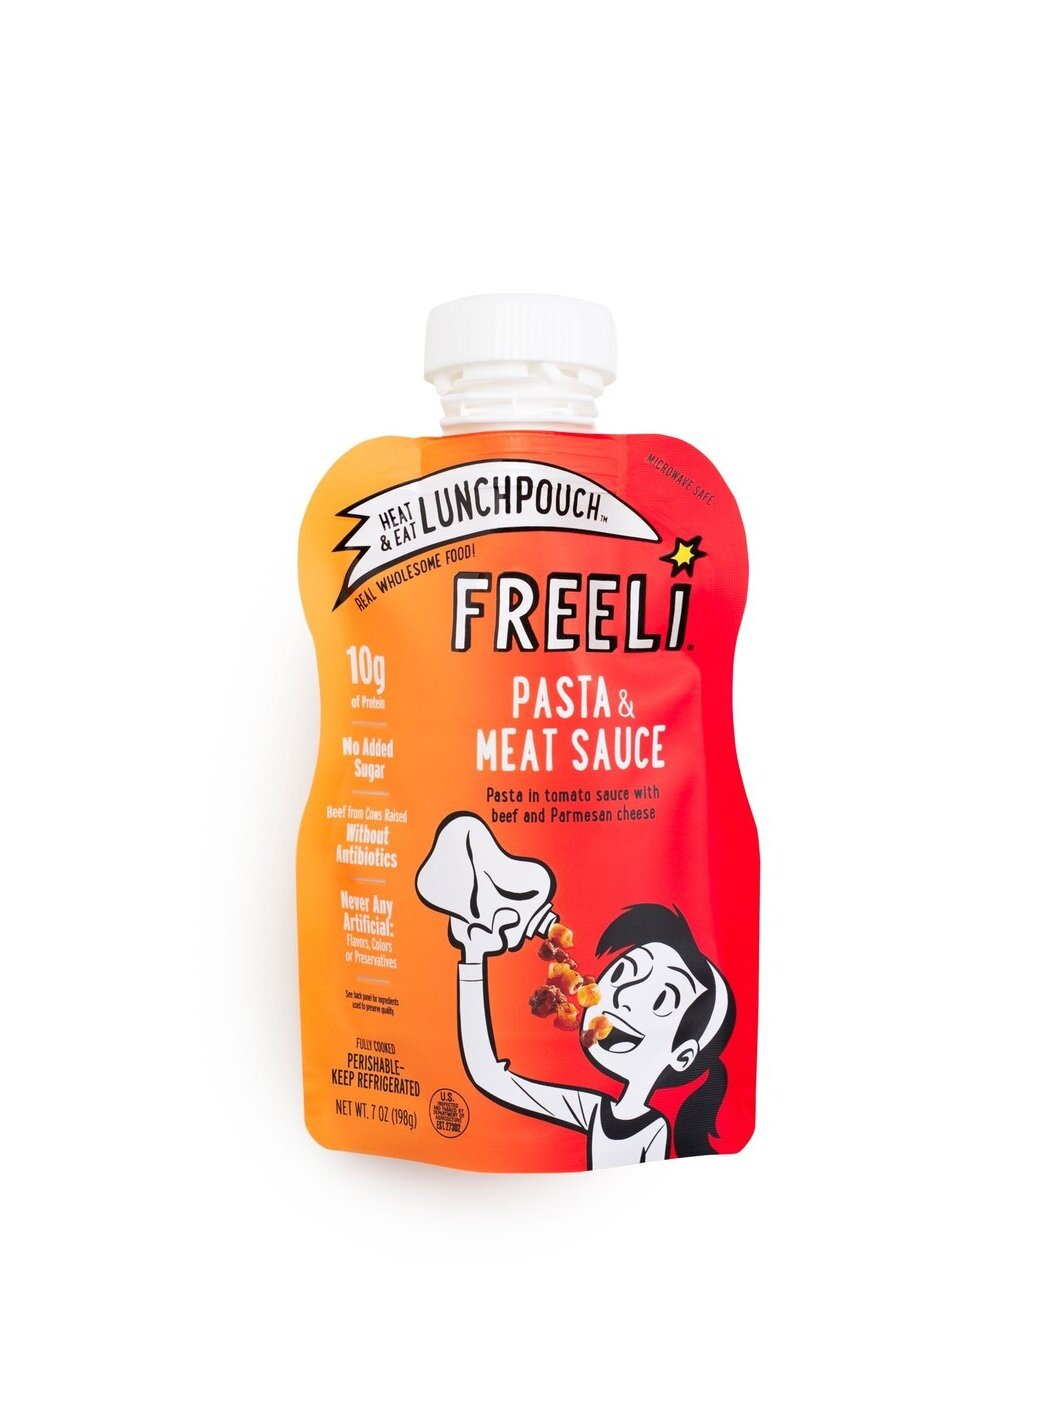 Freeli Foods | Lunchpouch | Pasta and meat sauce | Product.jpeg